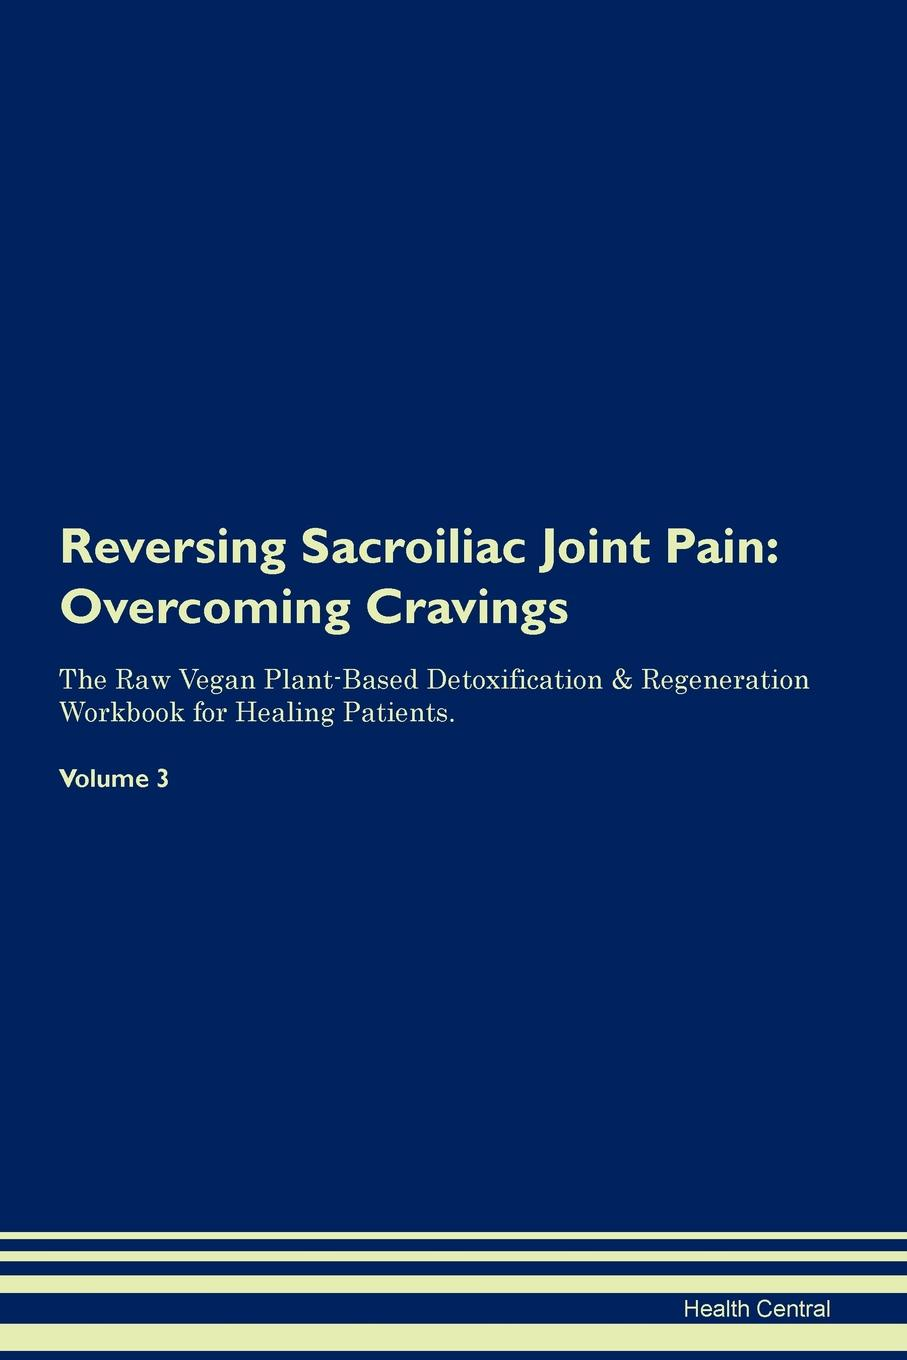 Health Central Reversing Sacroiliac Joint Pain. Overcoming Cravings The Raw Vegan Plant-Based Detoxification . Regeneration Workbook for Healing Patients. Volume 3 100% positive health glucosamine chondroitin sulfate high strength joint support pain relaxation